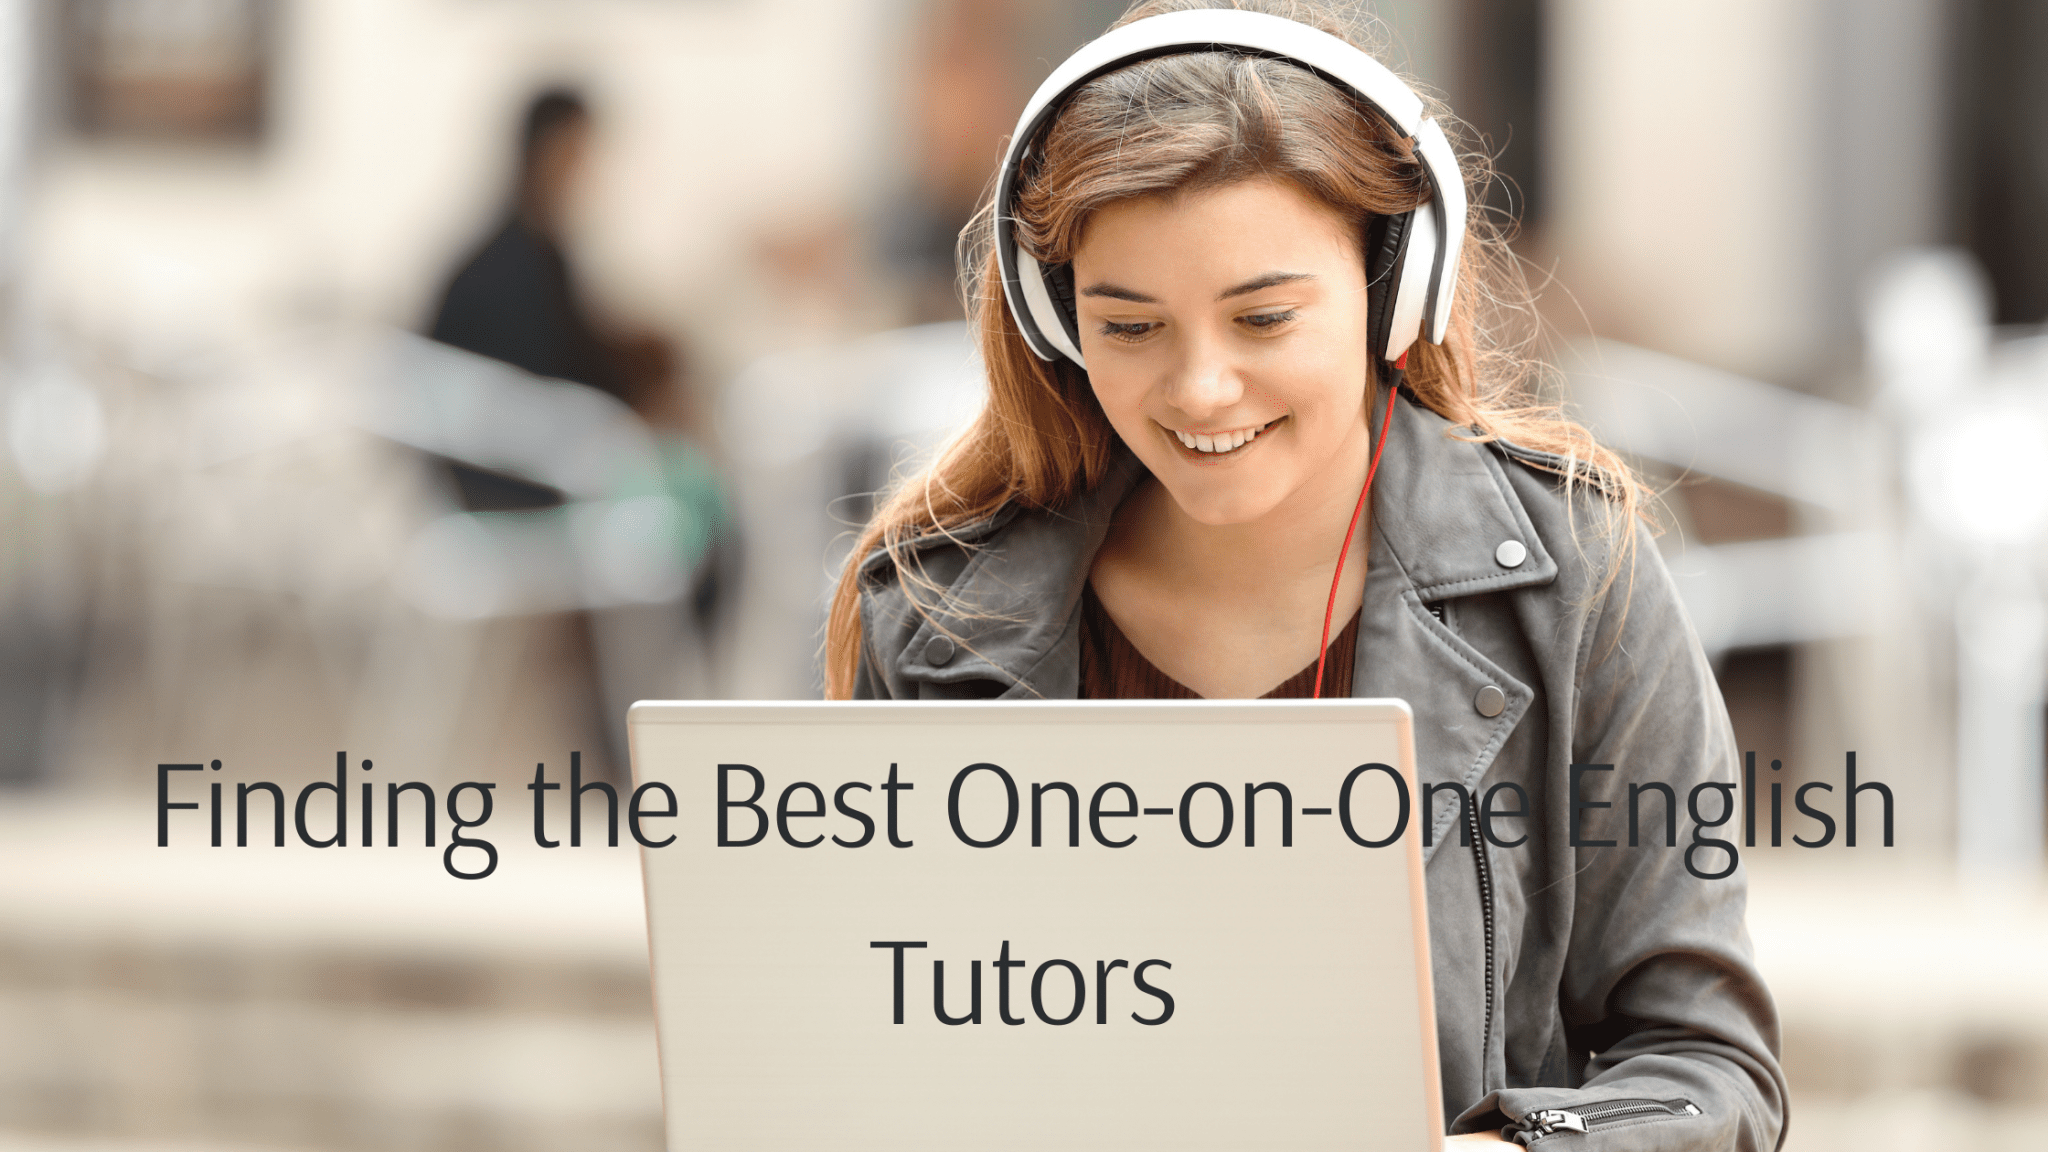 Finding the Best One-on-One English Tutors